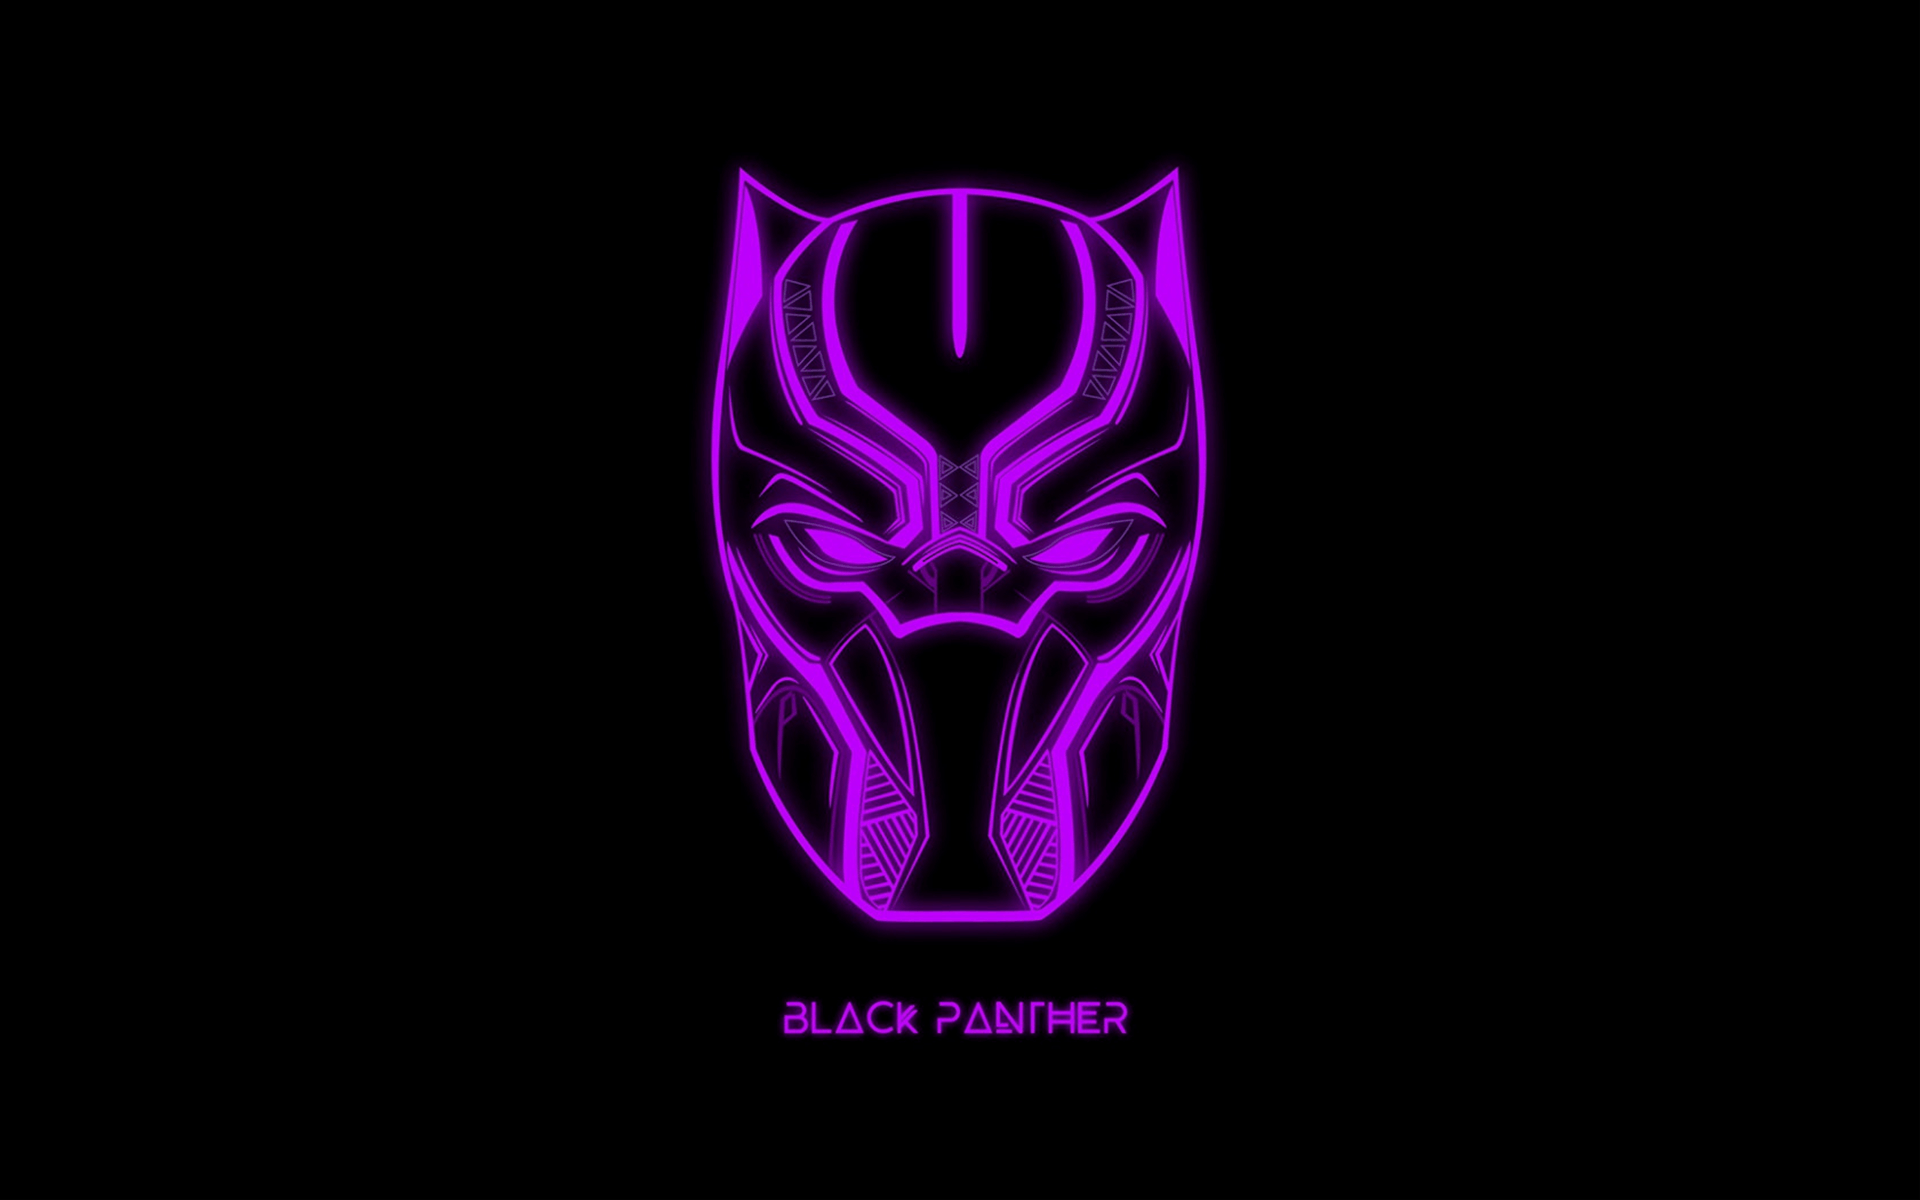 Black Panther Neon Wallpapers - Wallpaper Cave